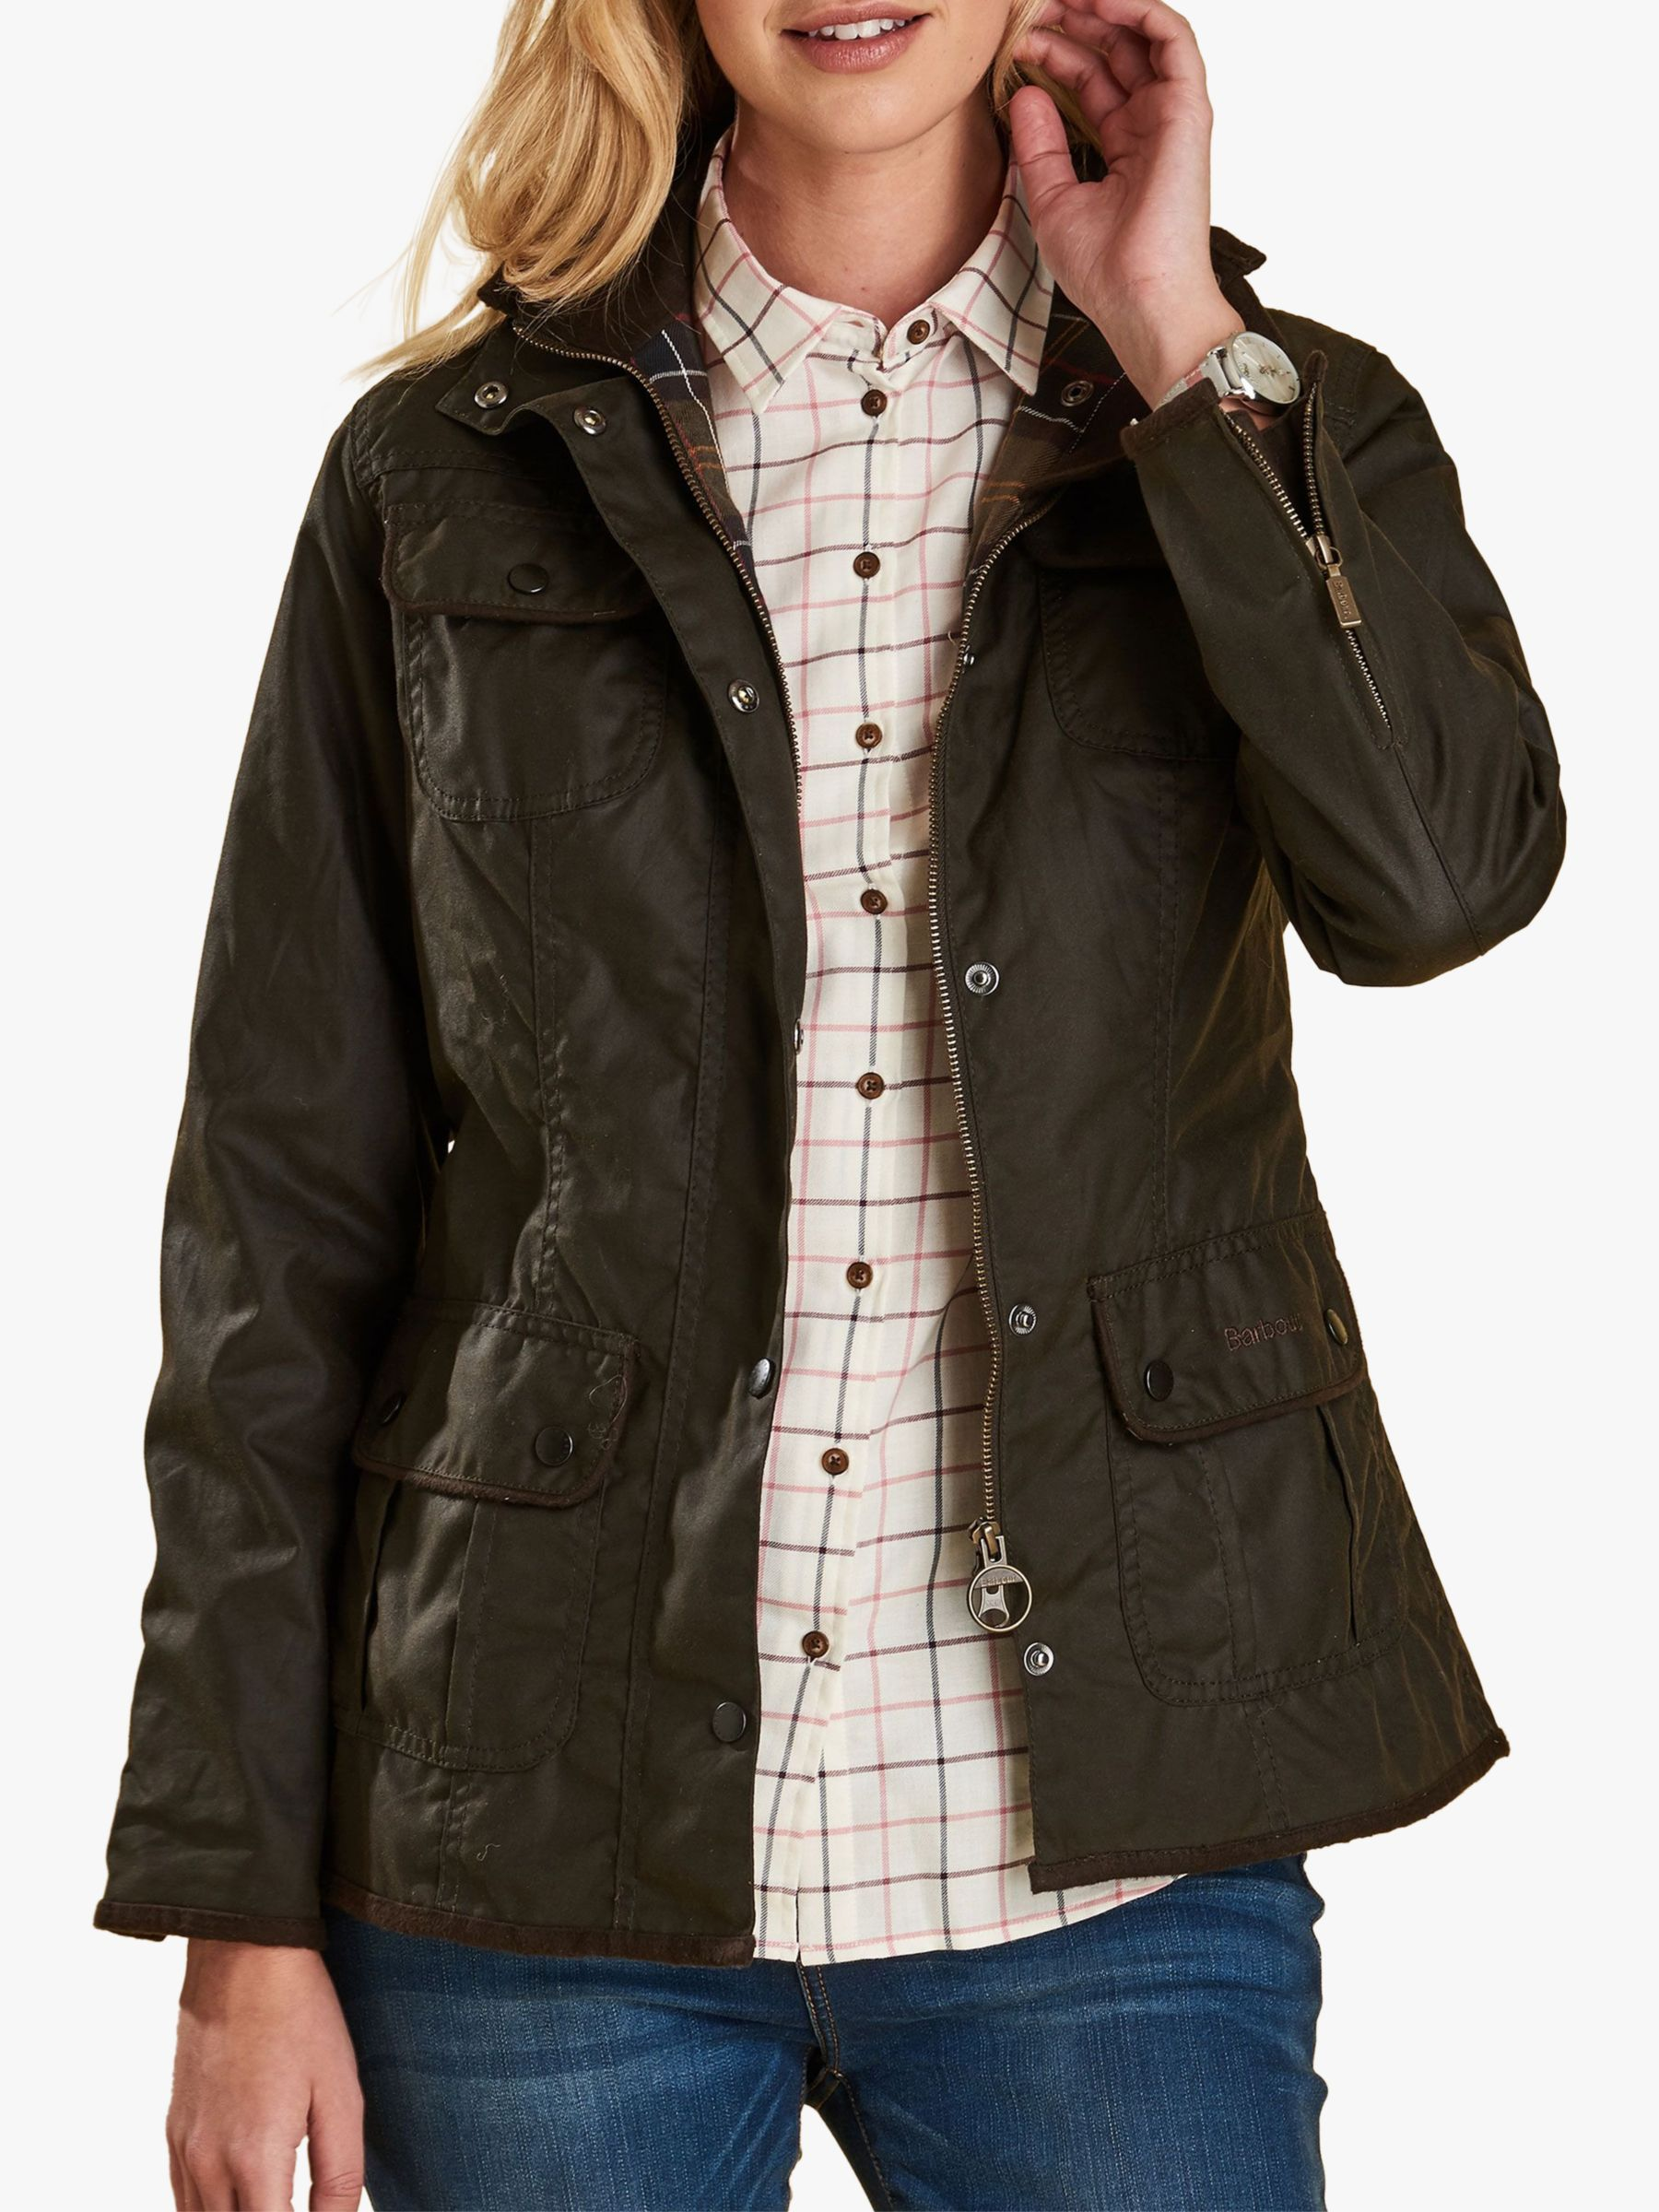 barbour jackets near me